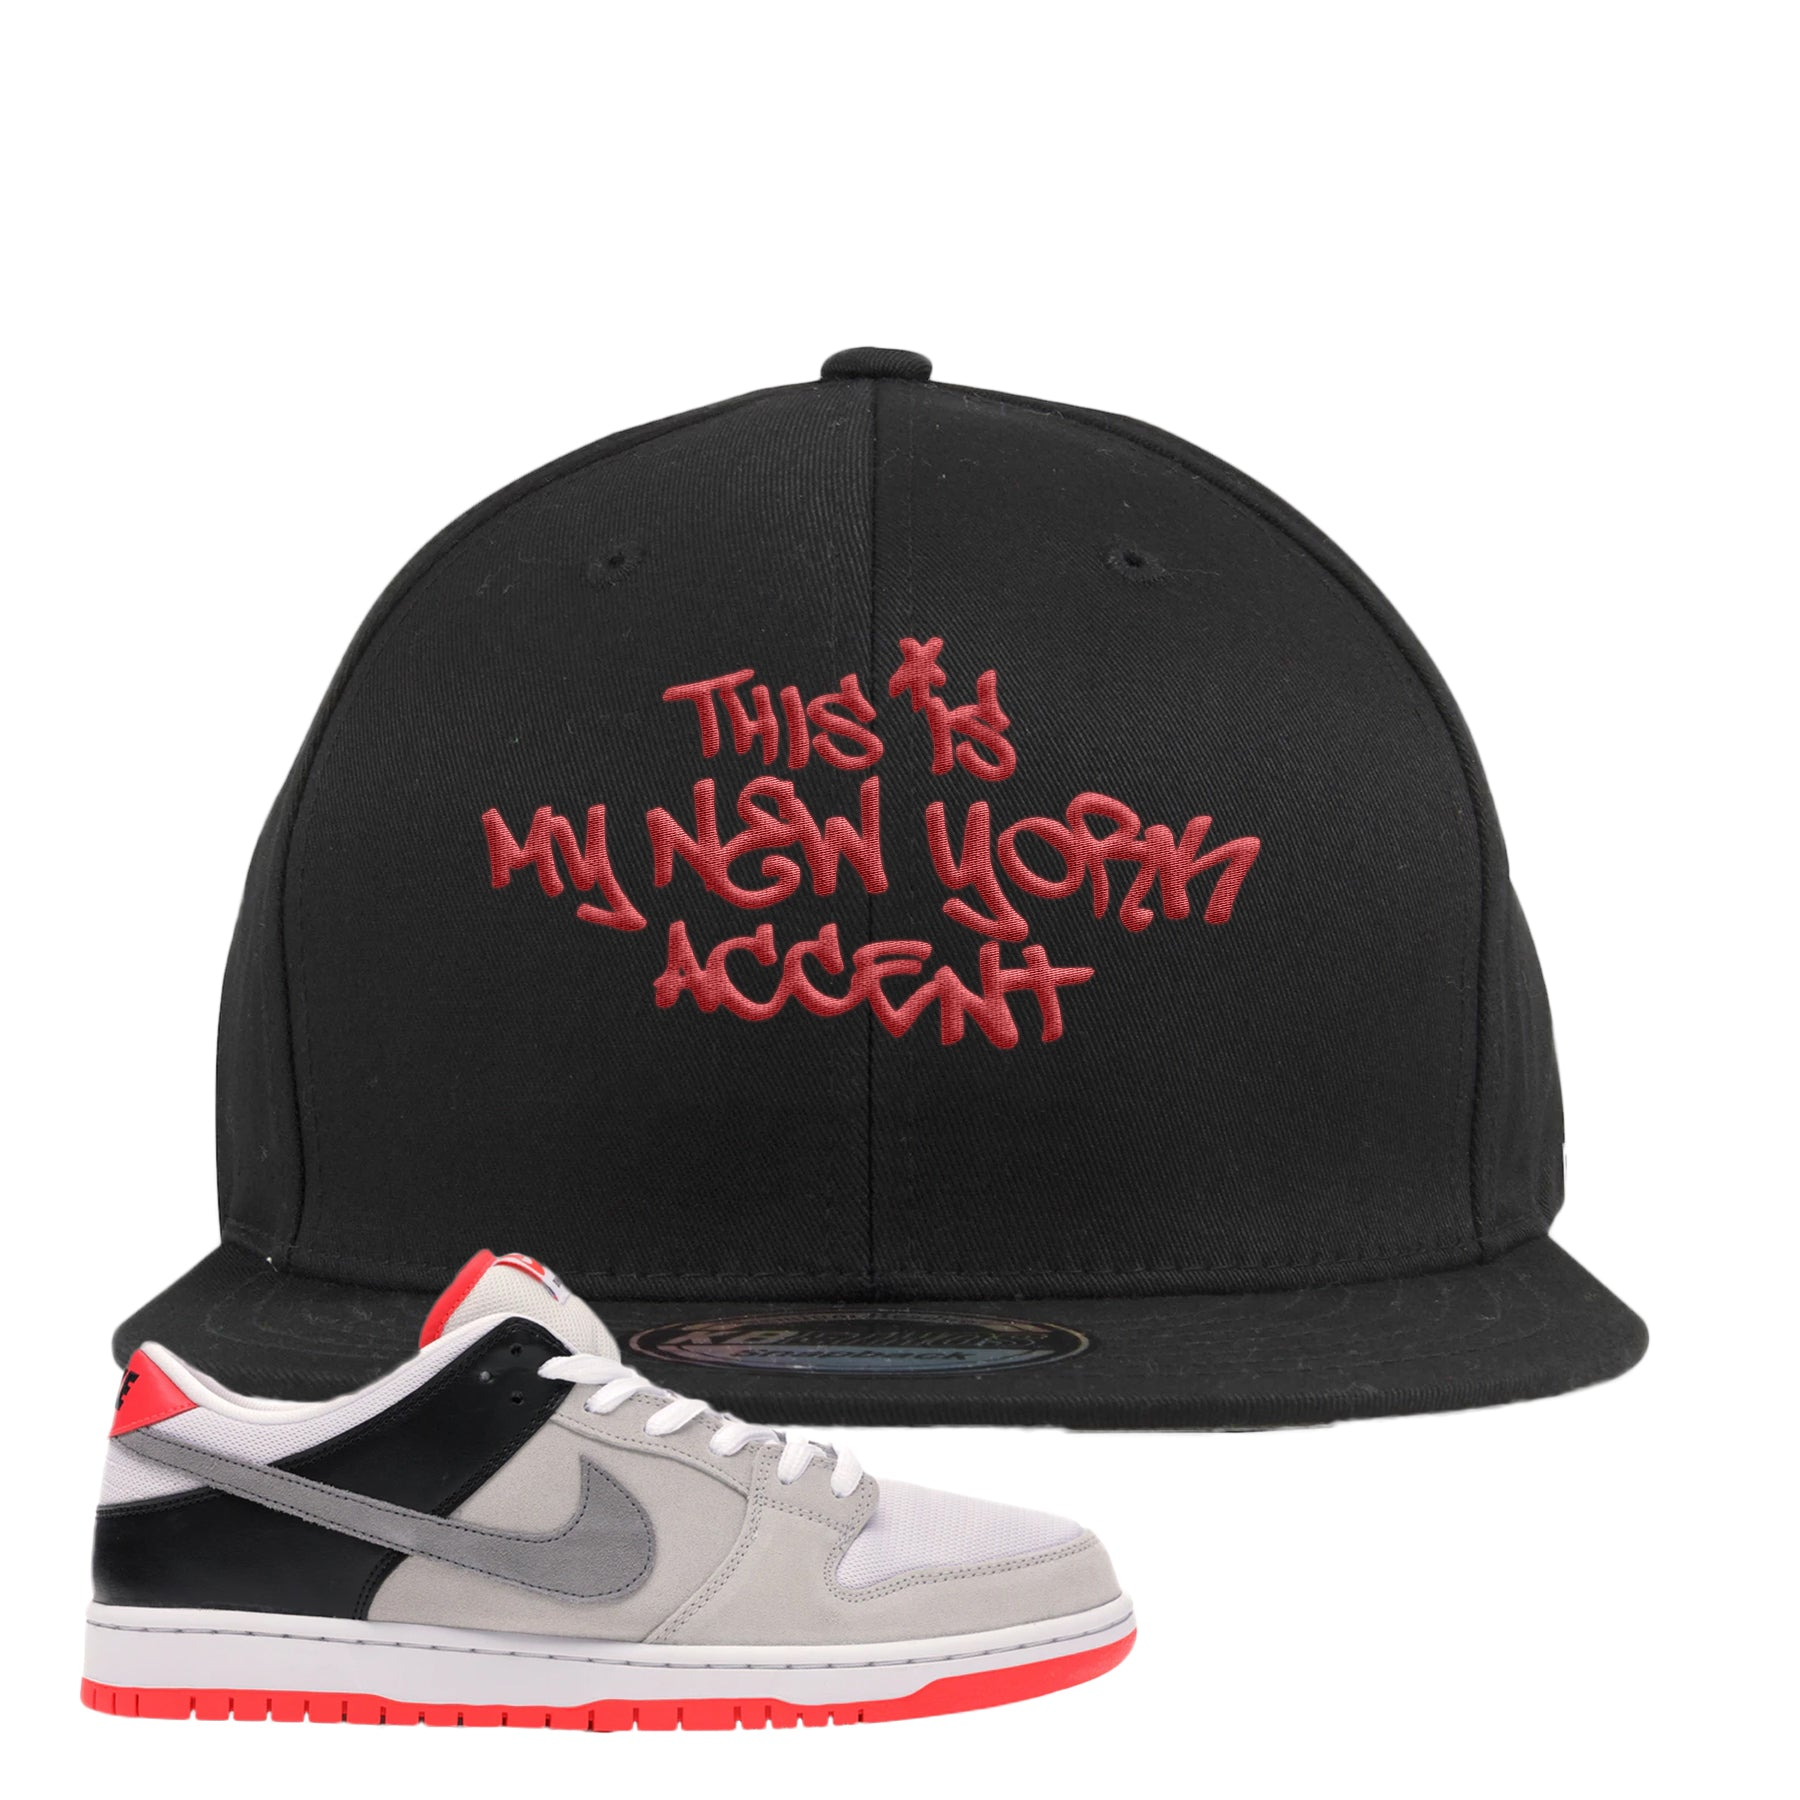 nike sb dunk low infrared orange label this is my new york accent